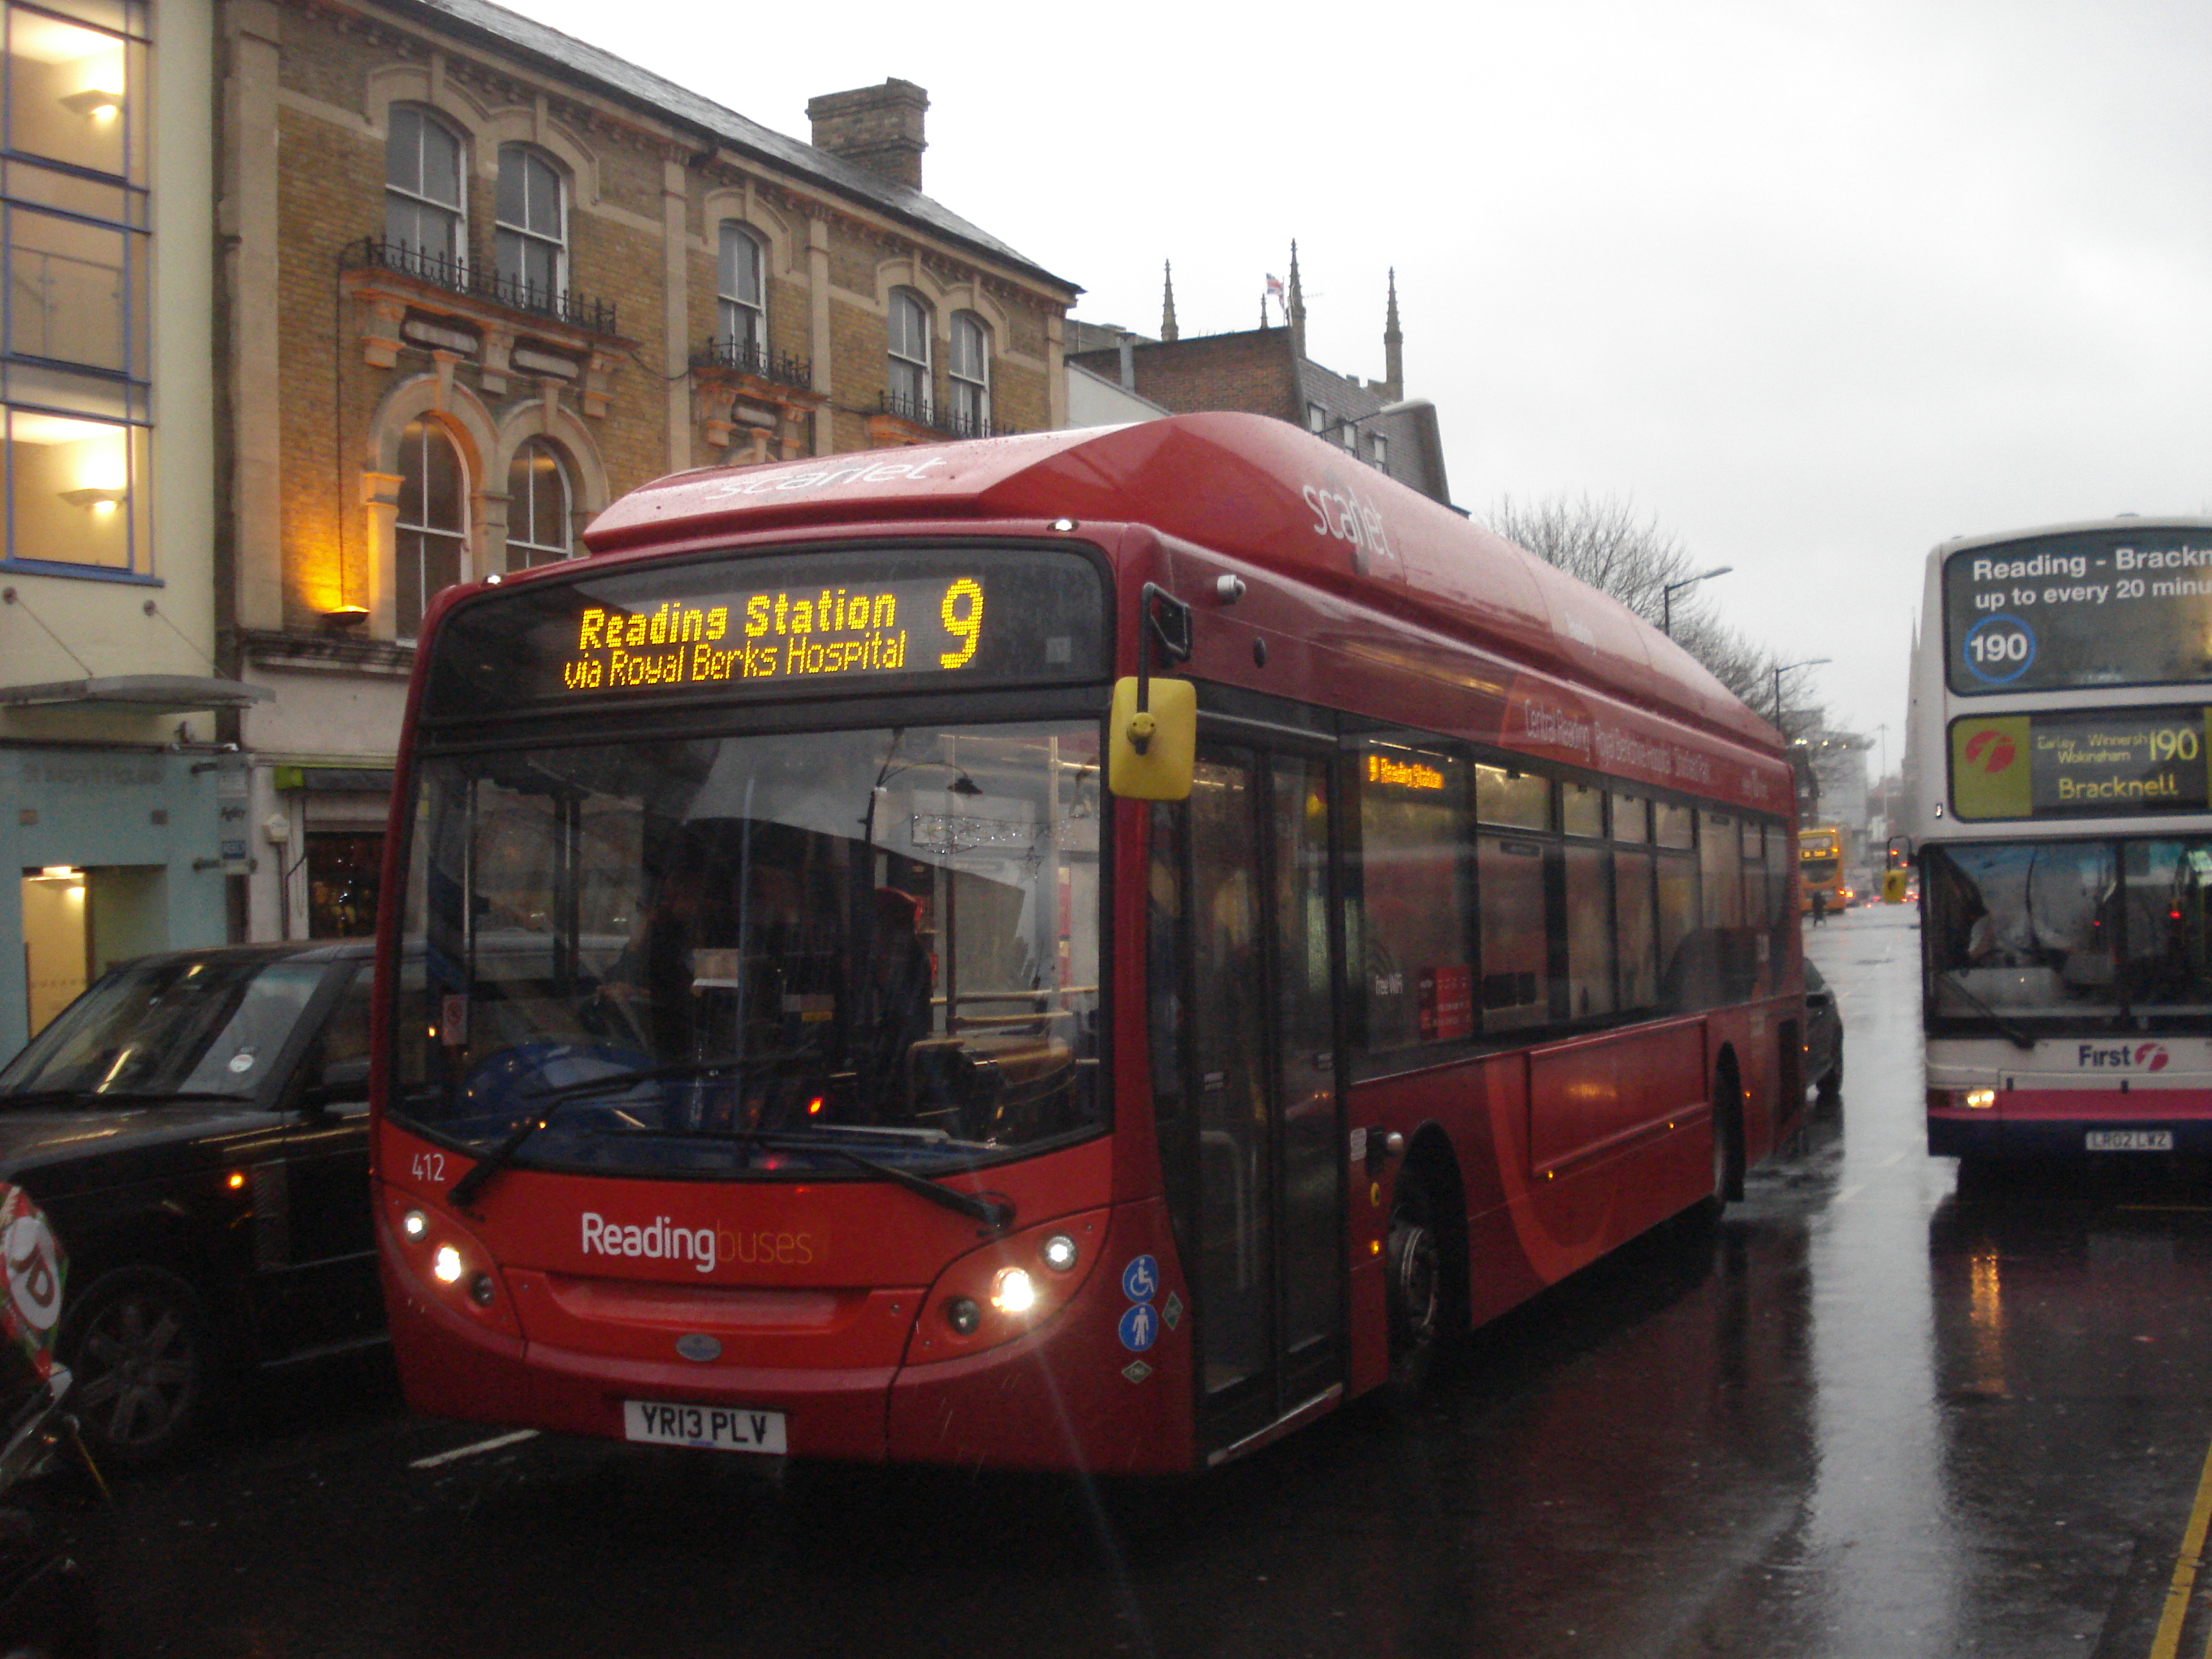 Reading Buses 412 on Scarlet 9, Reading/St Mary Butts